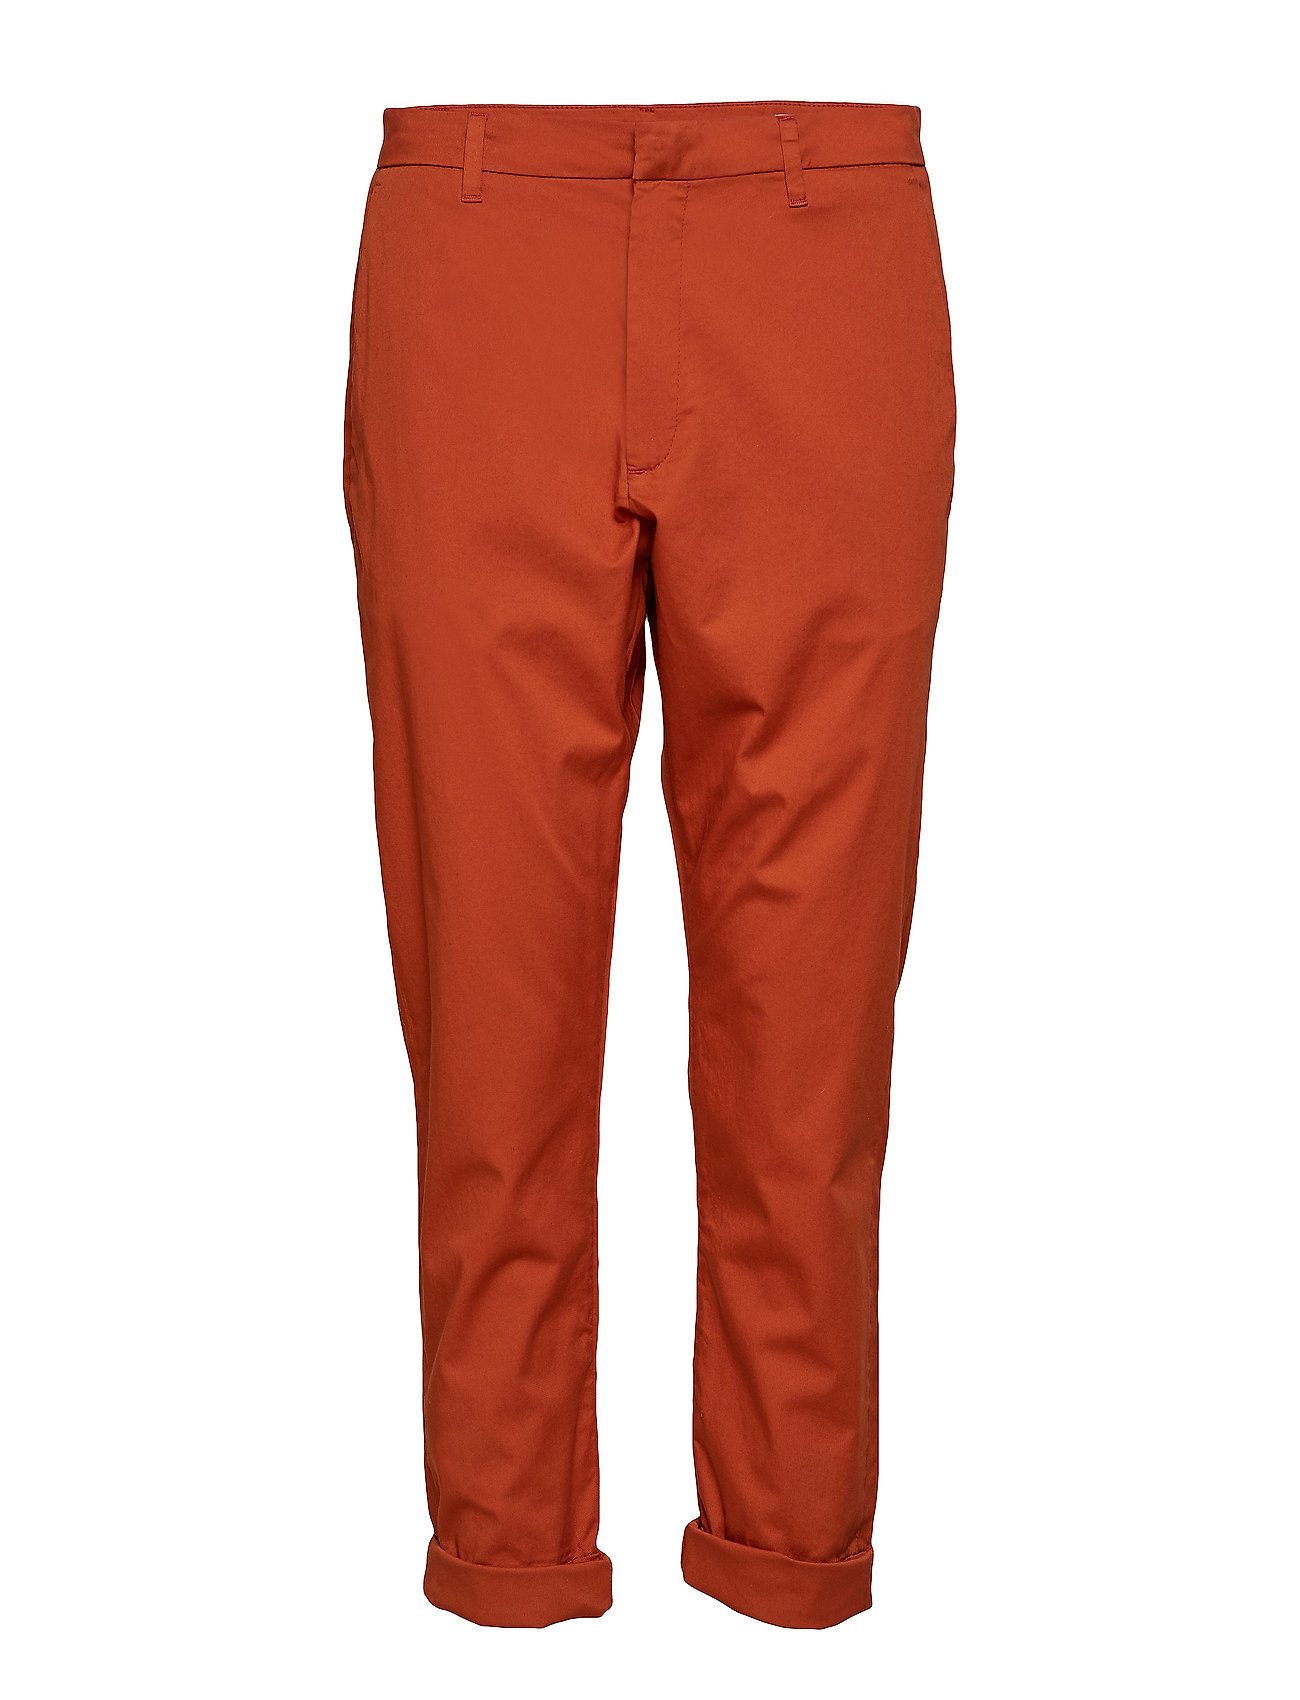 Hope News Trouser - AMBER